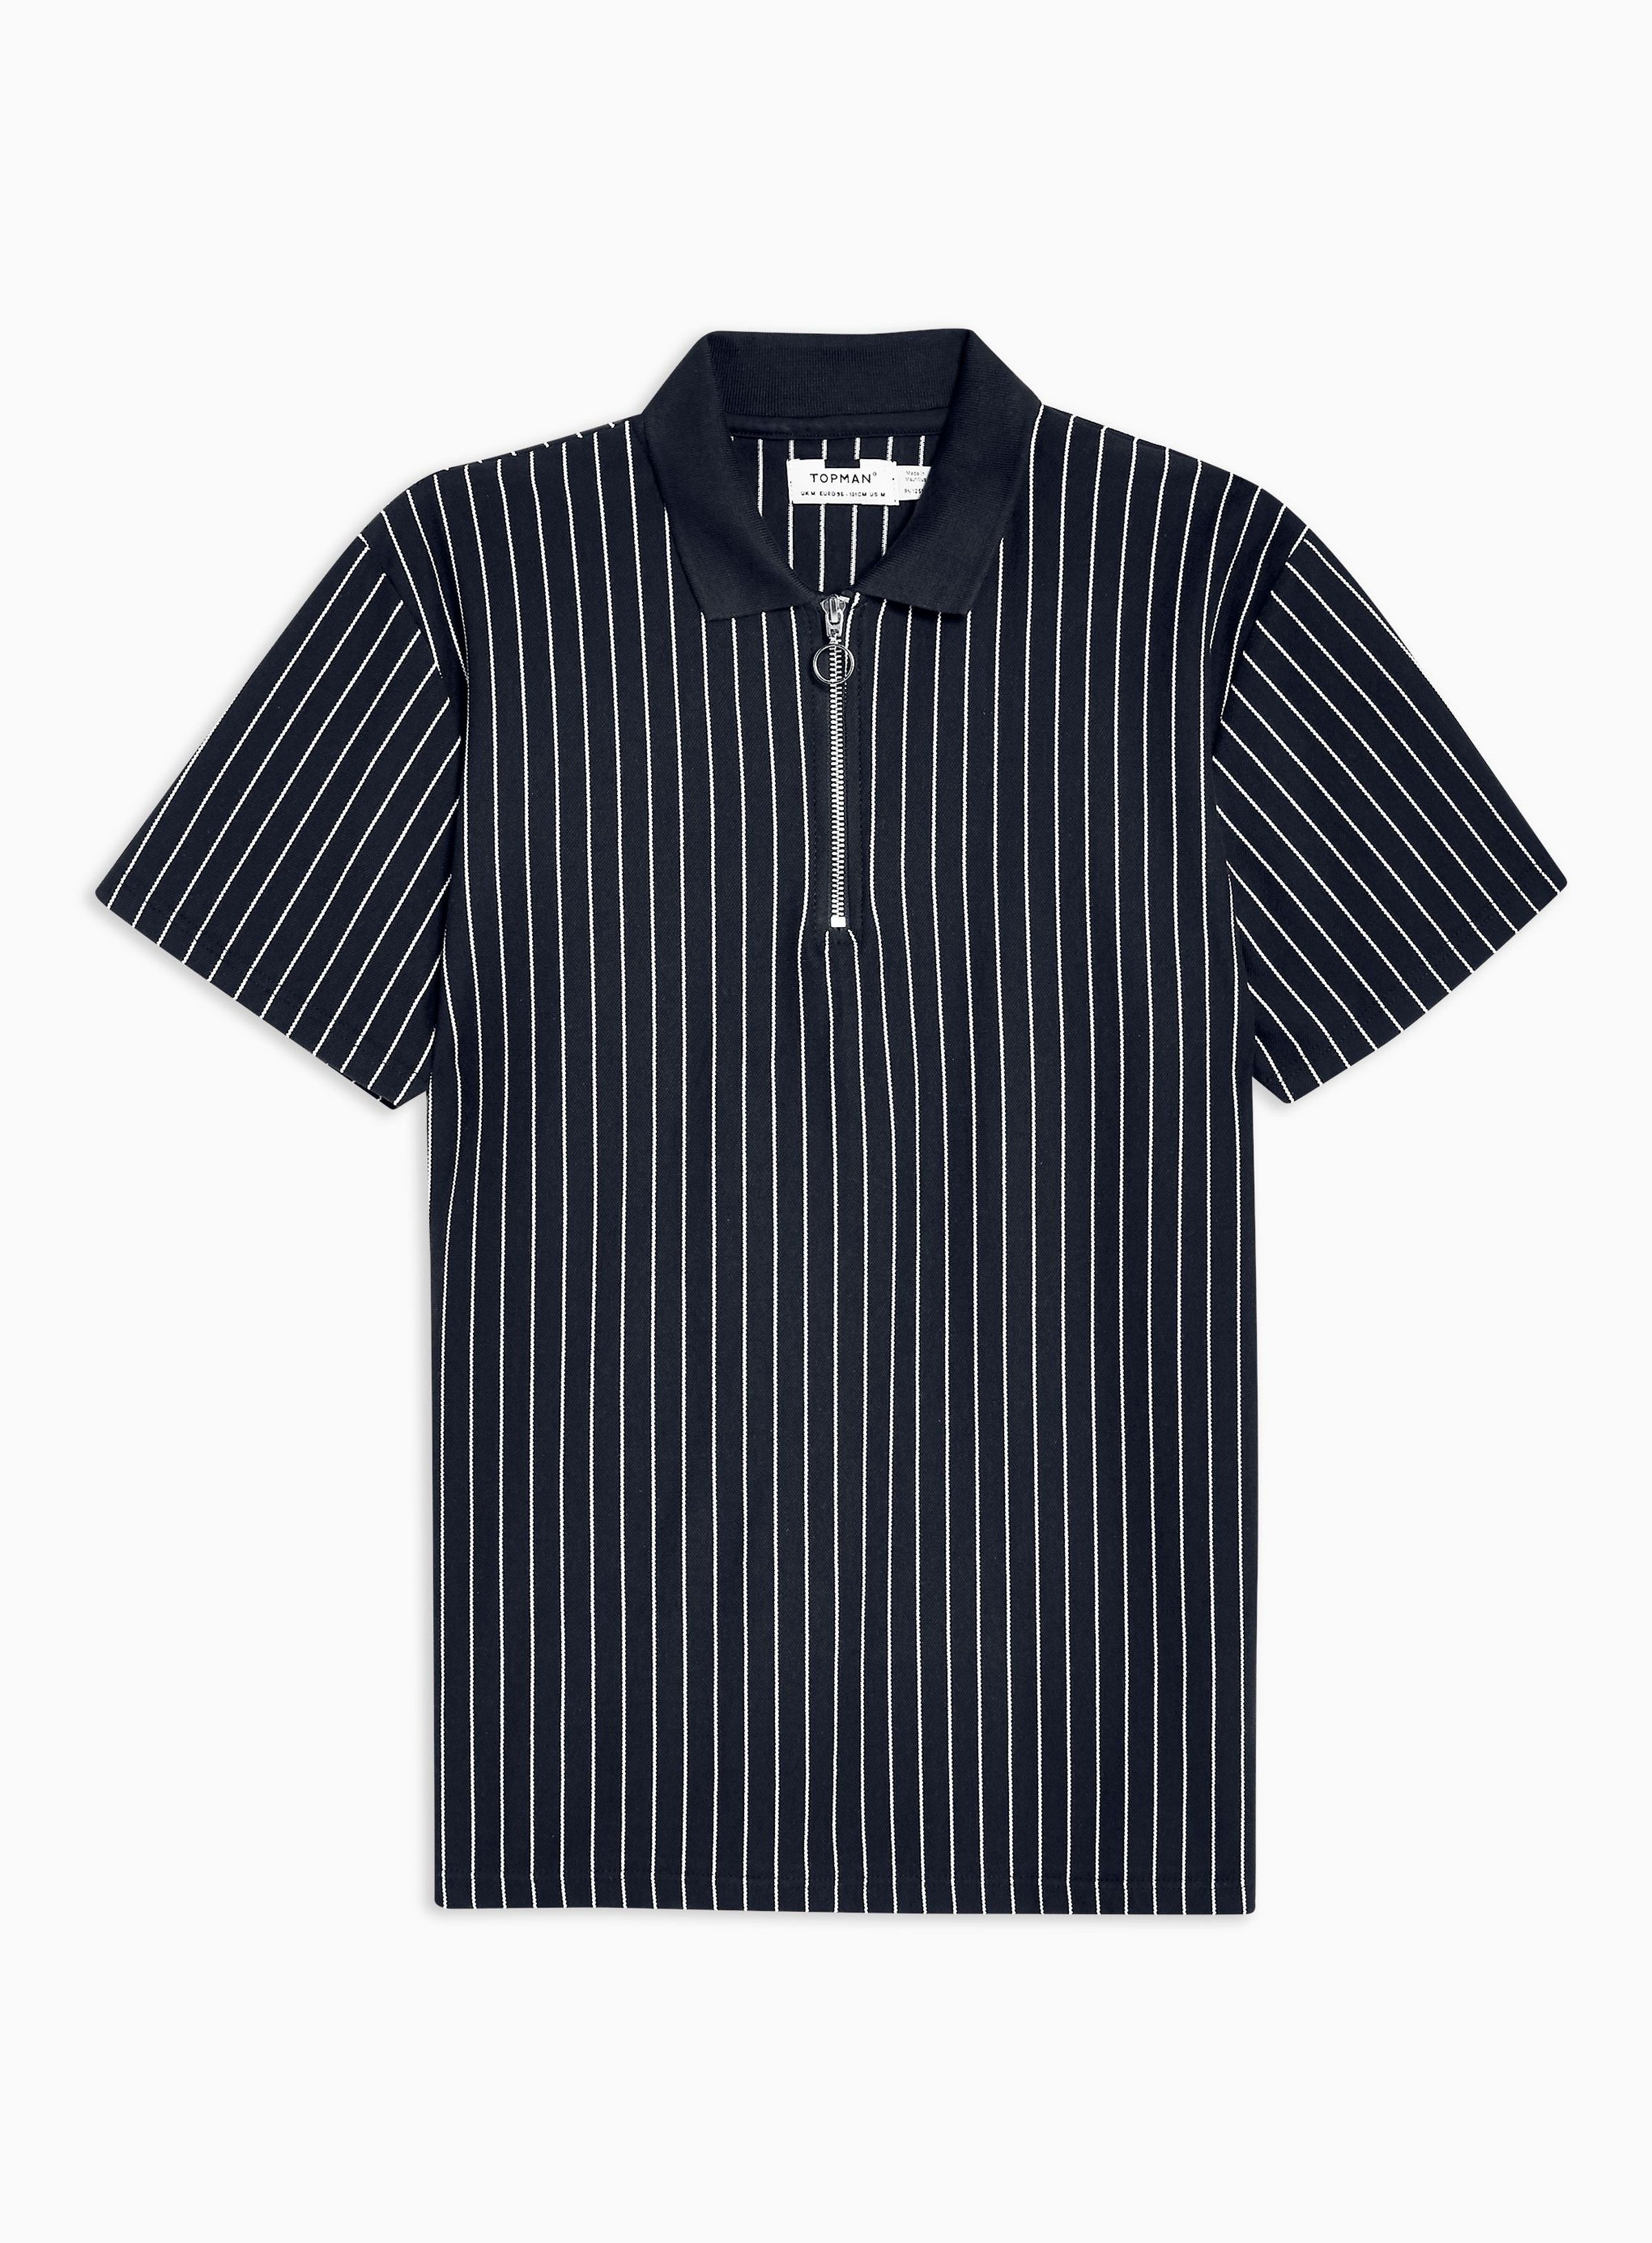 Topman polo shirt - £22 - Wear to work on dress down Friday and head straight to the pub at 5pm